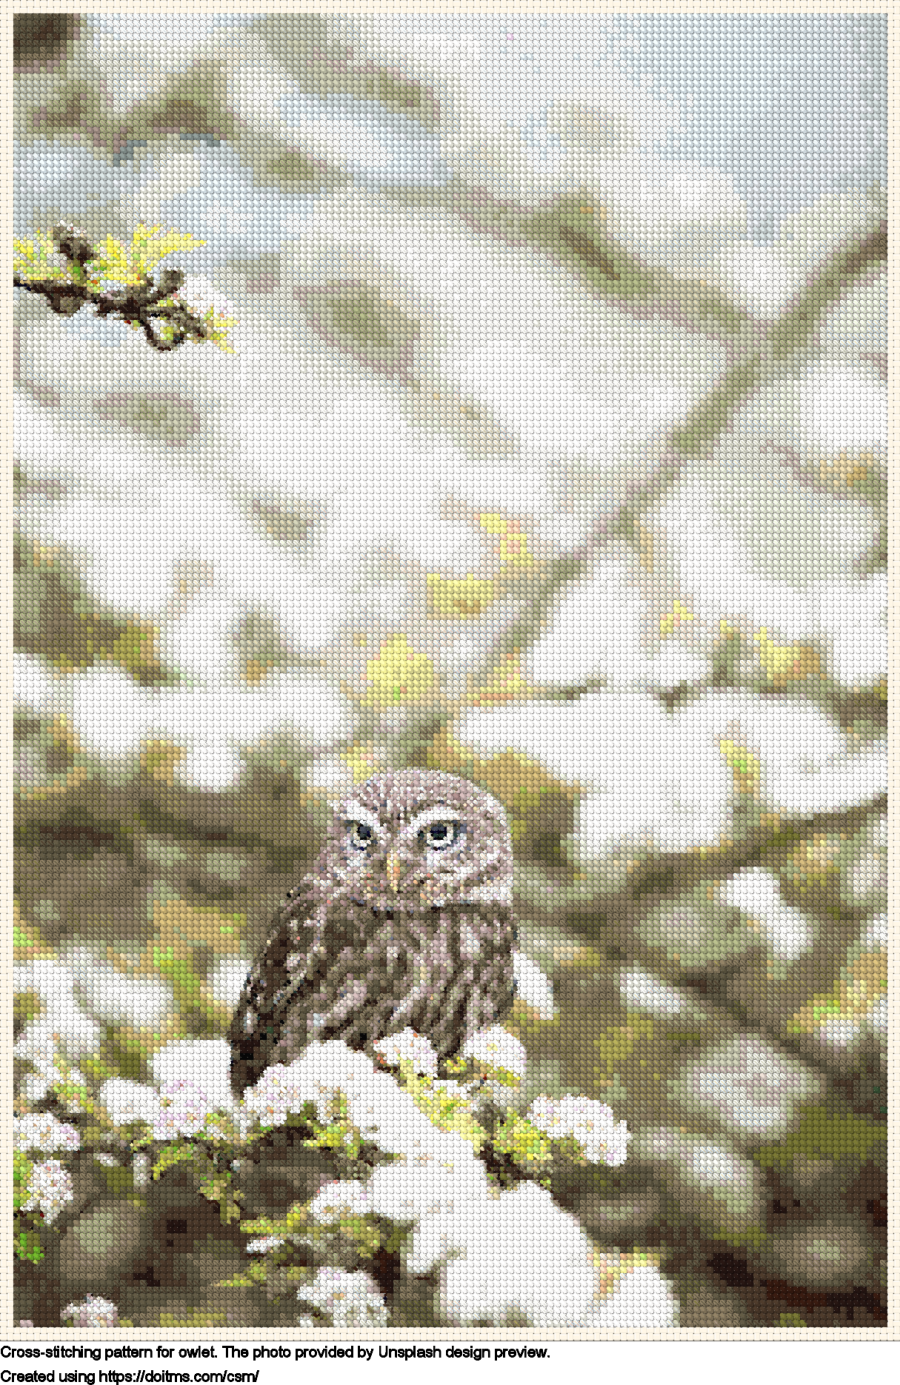 Free Owlet cross-stitching design